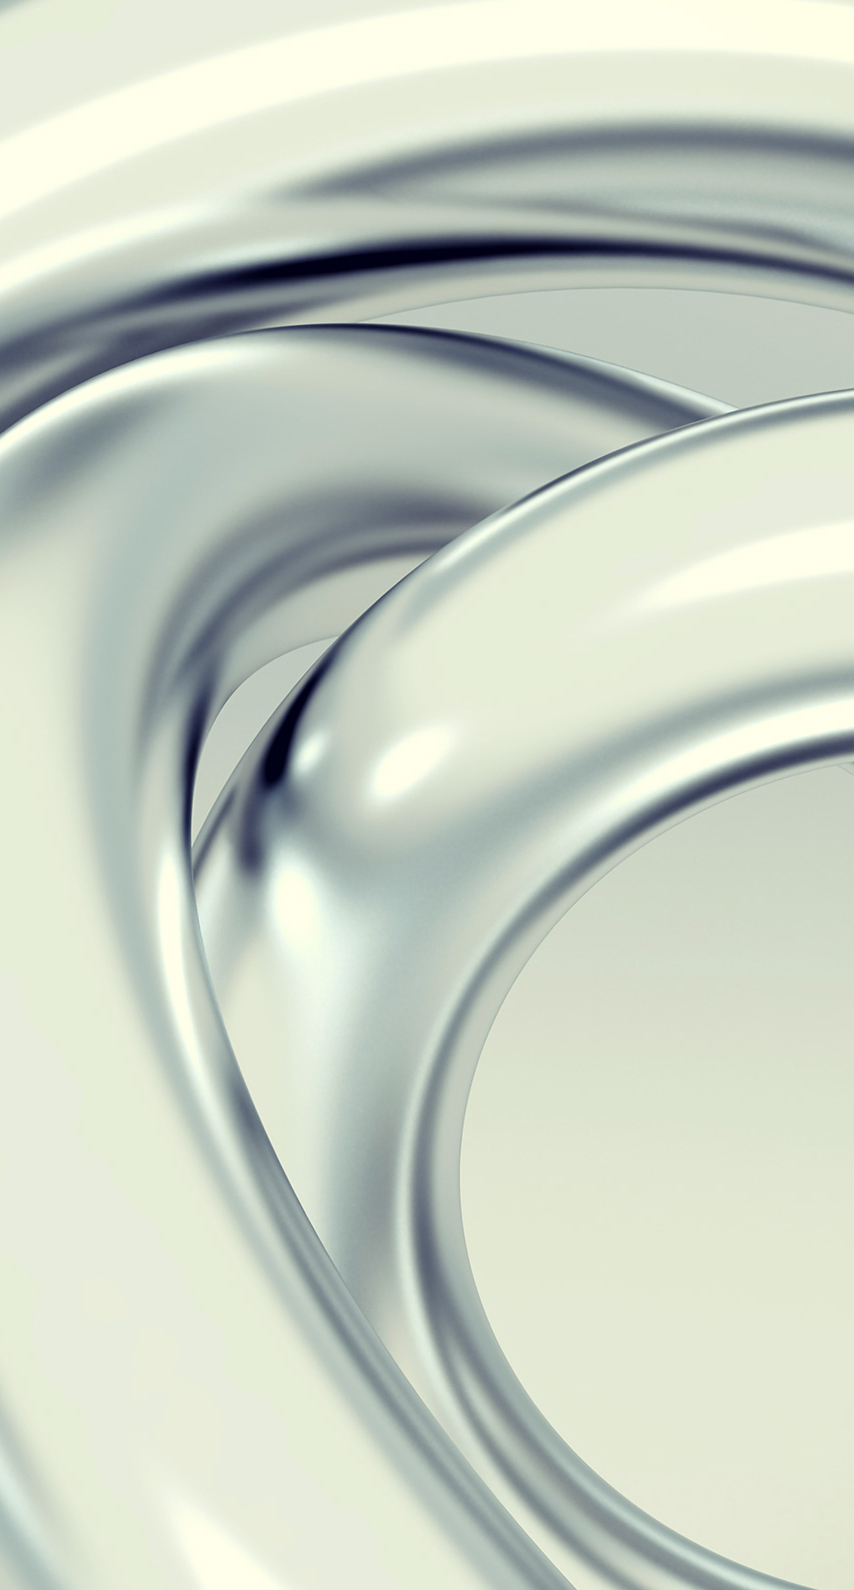 wallpaper, motion, shape, line, no person, shining, color, curve, smooth, contemporary, clean